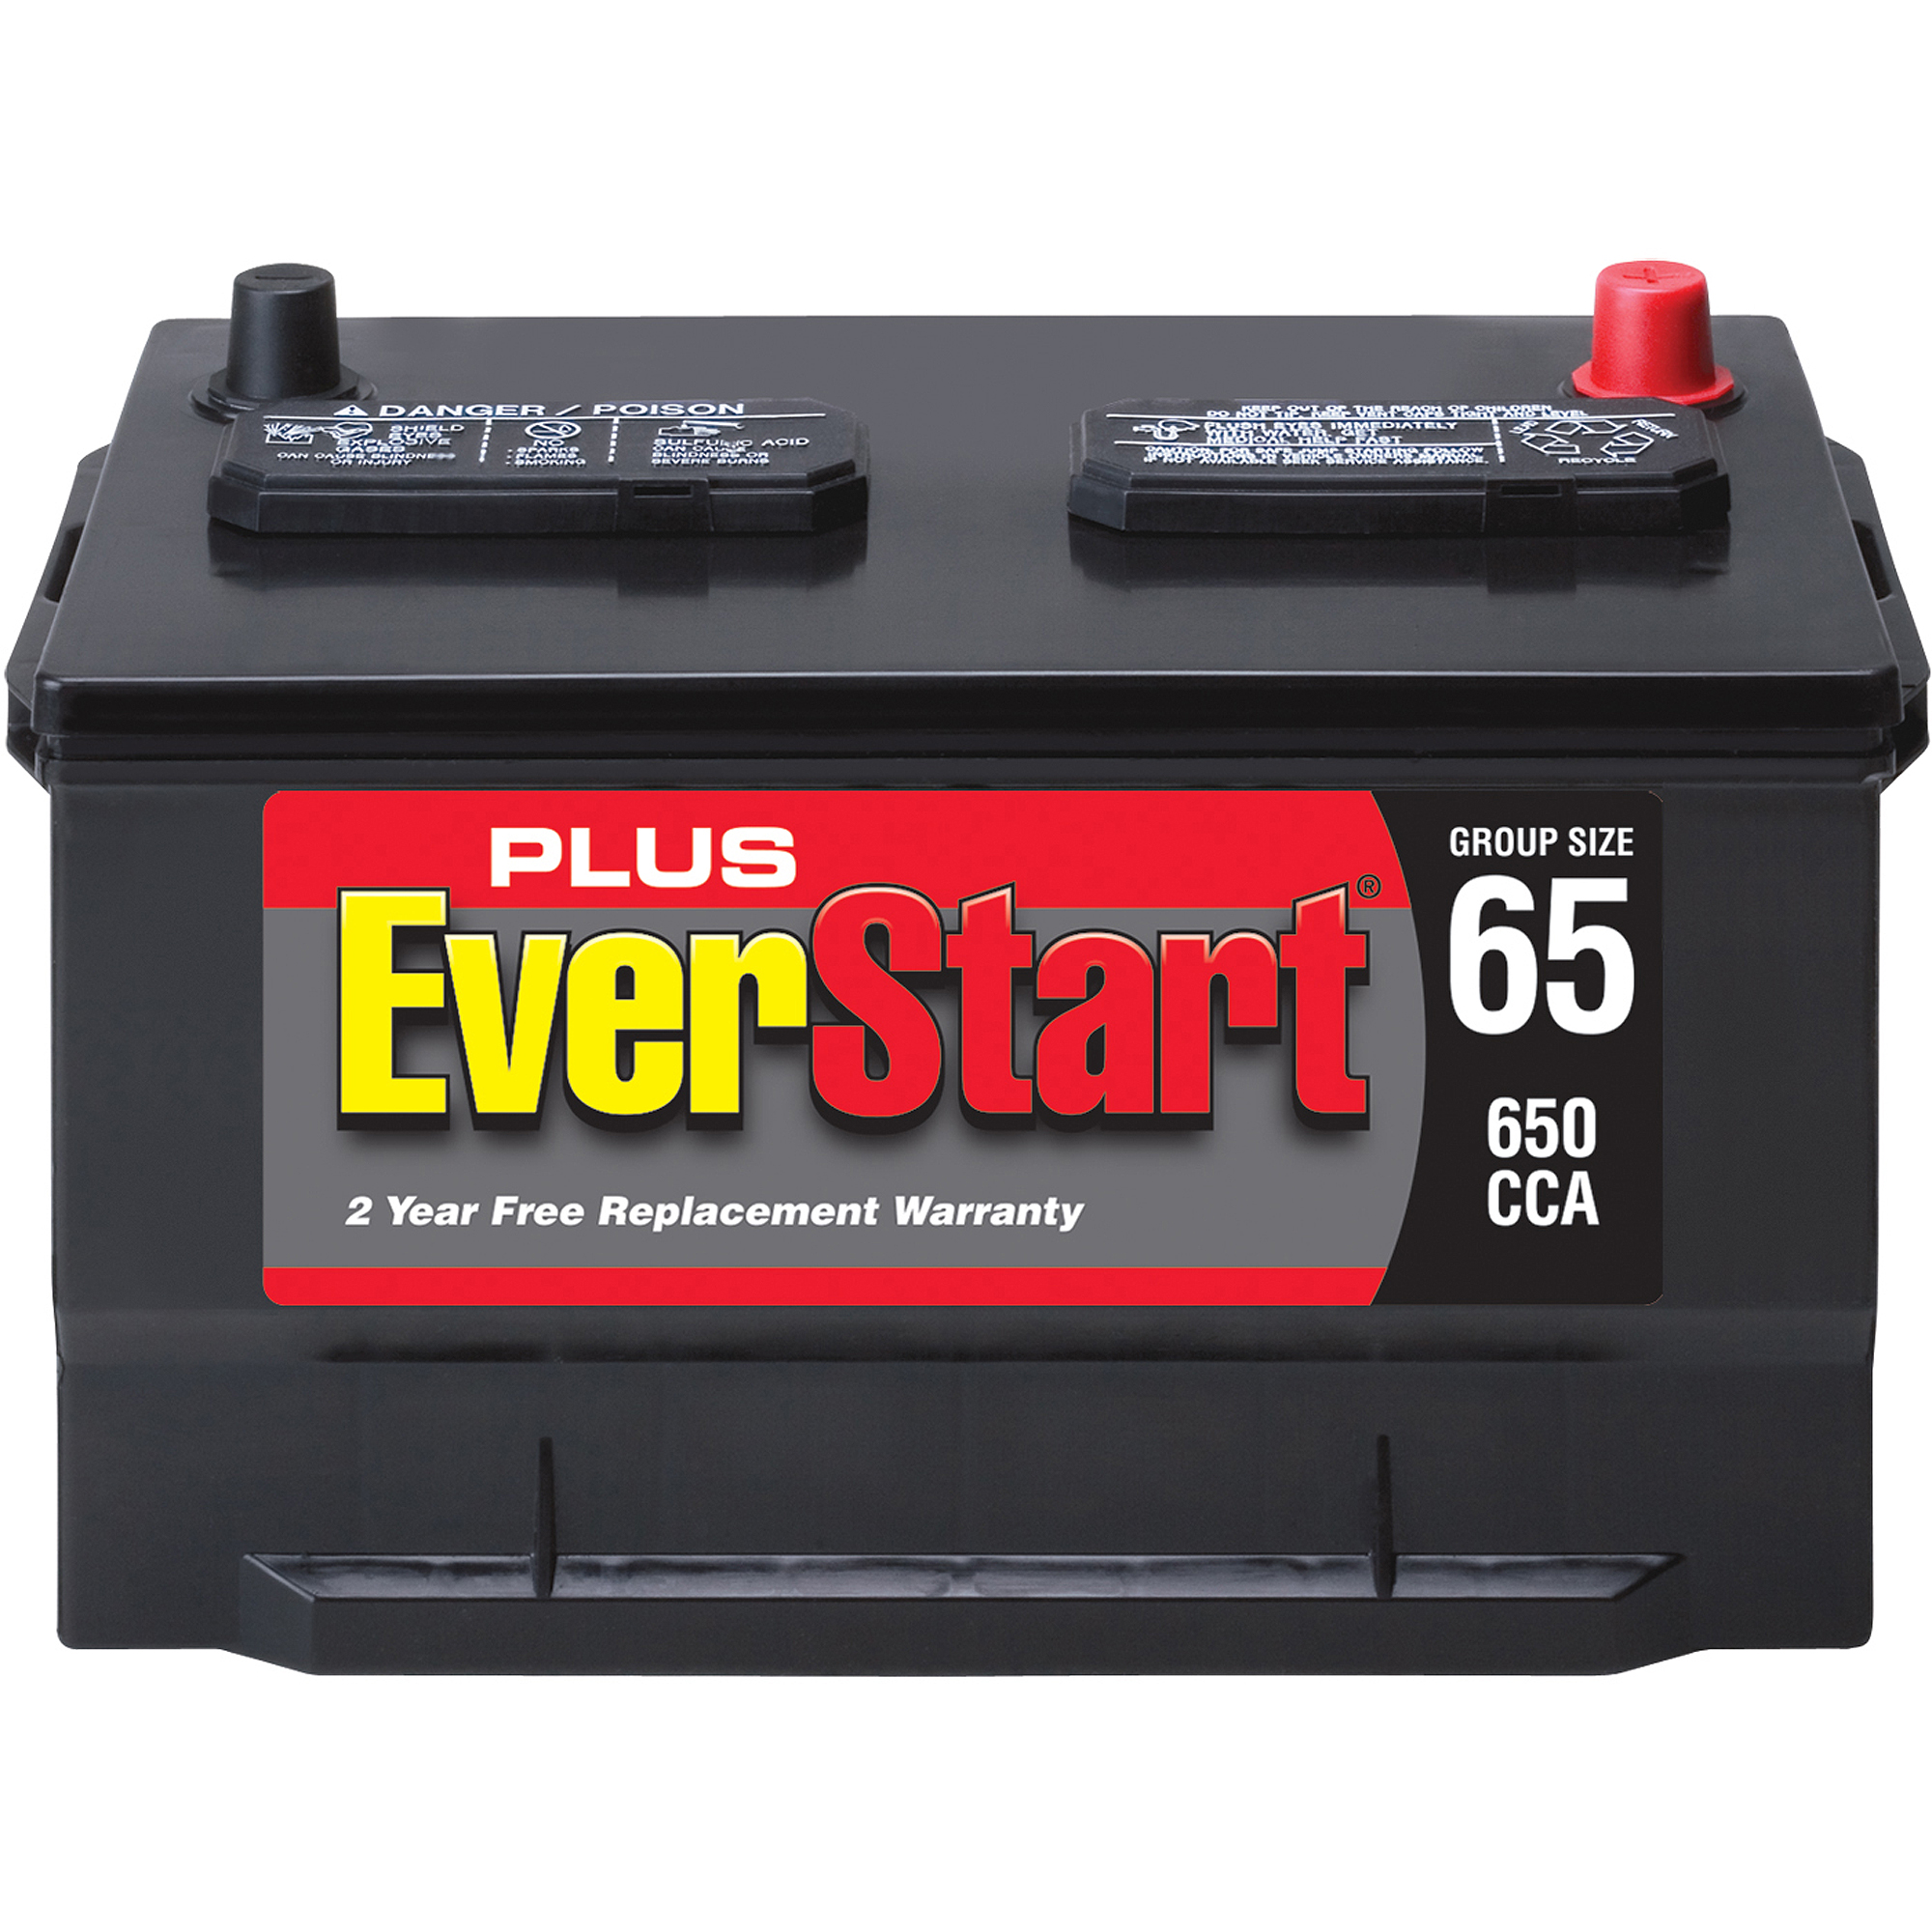 EverStart Plus Lead Acid Automotive Battery, Group Size 65-3